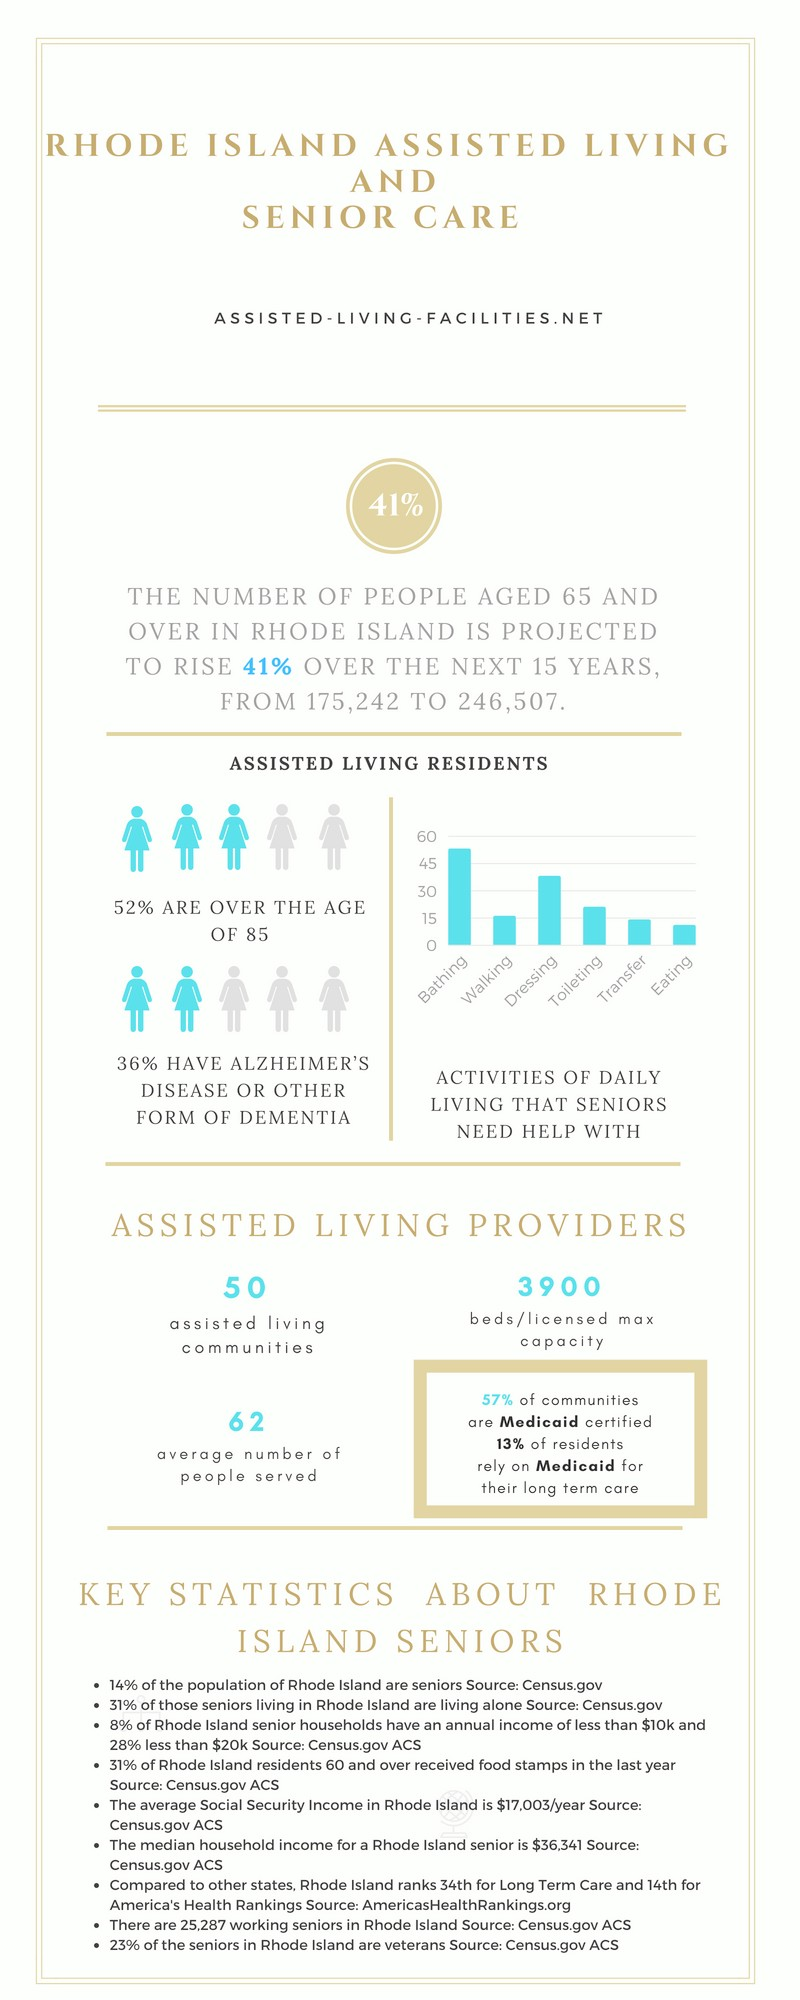 Assisted living in Rhode Island